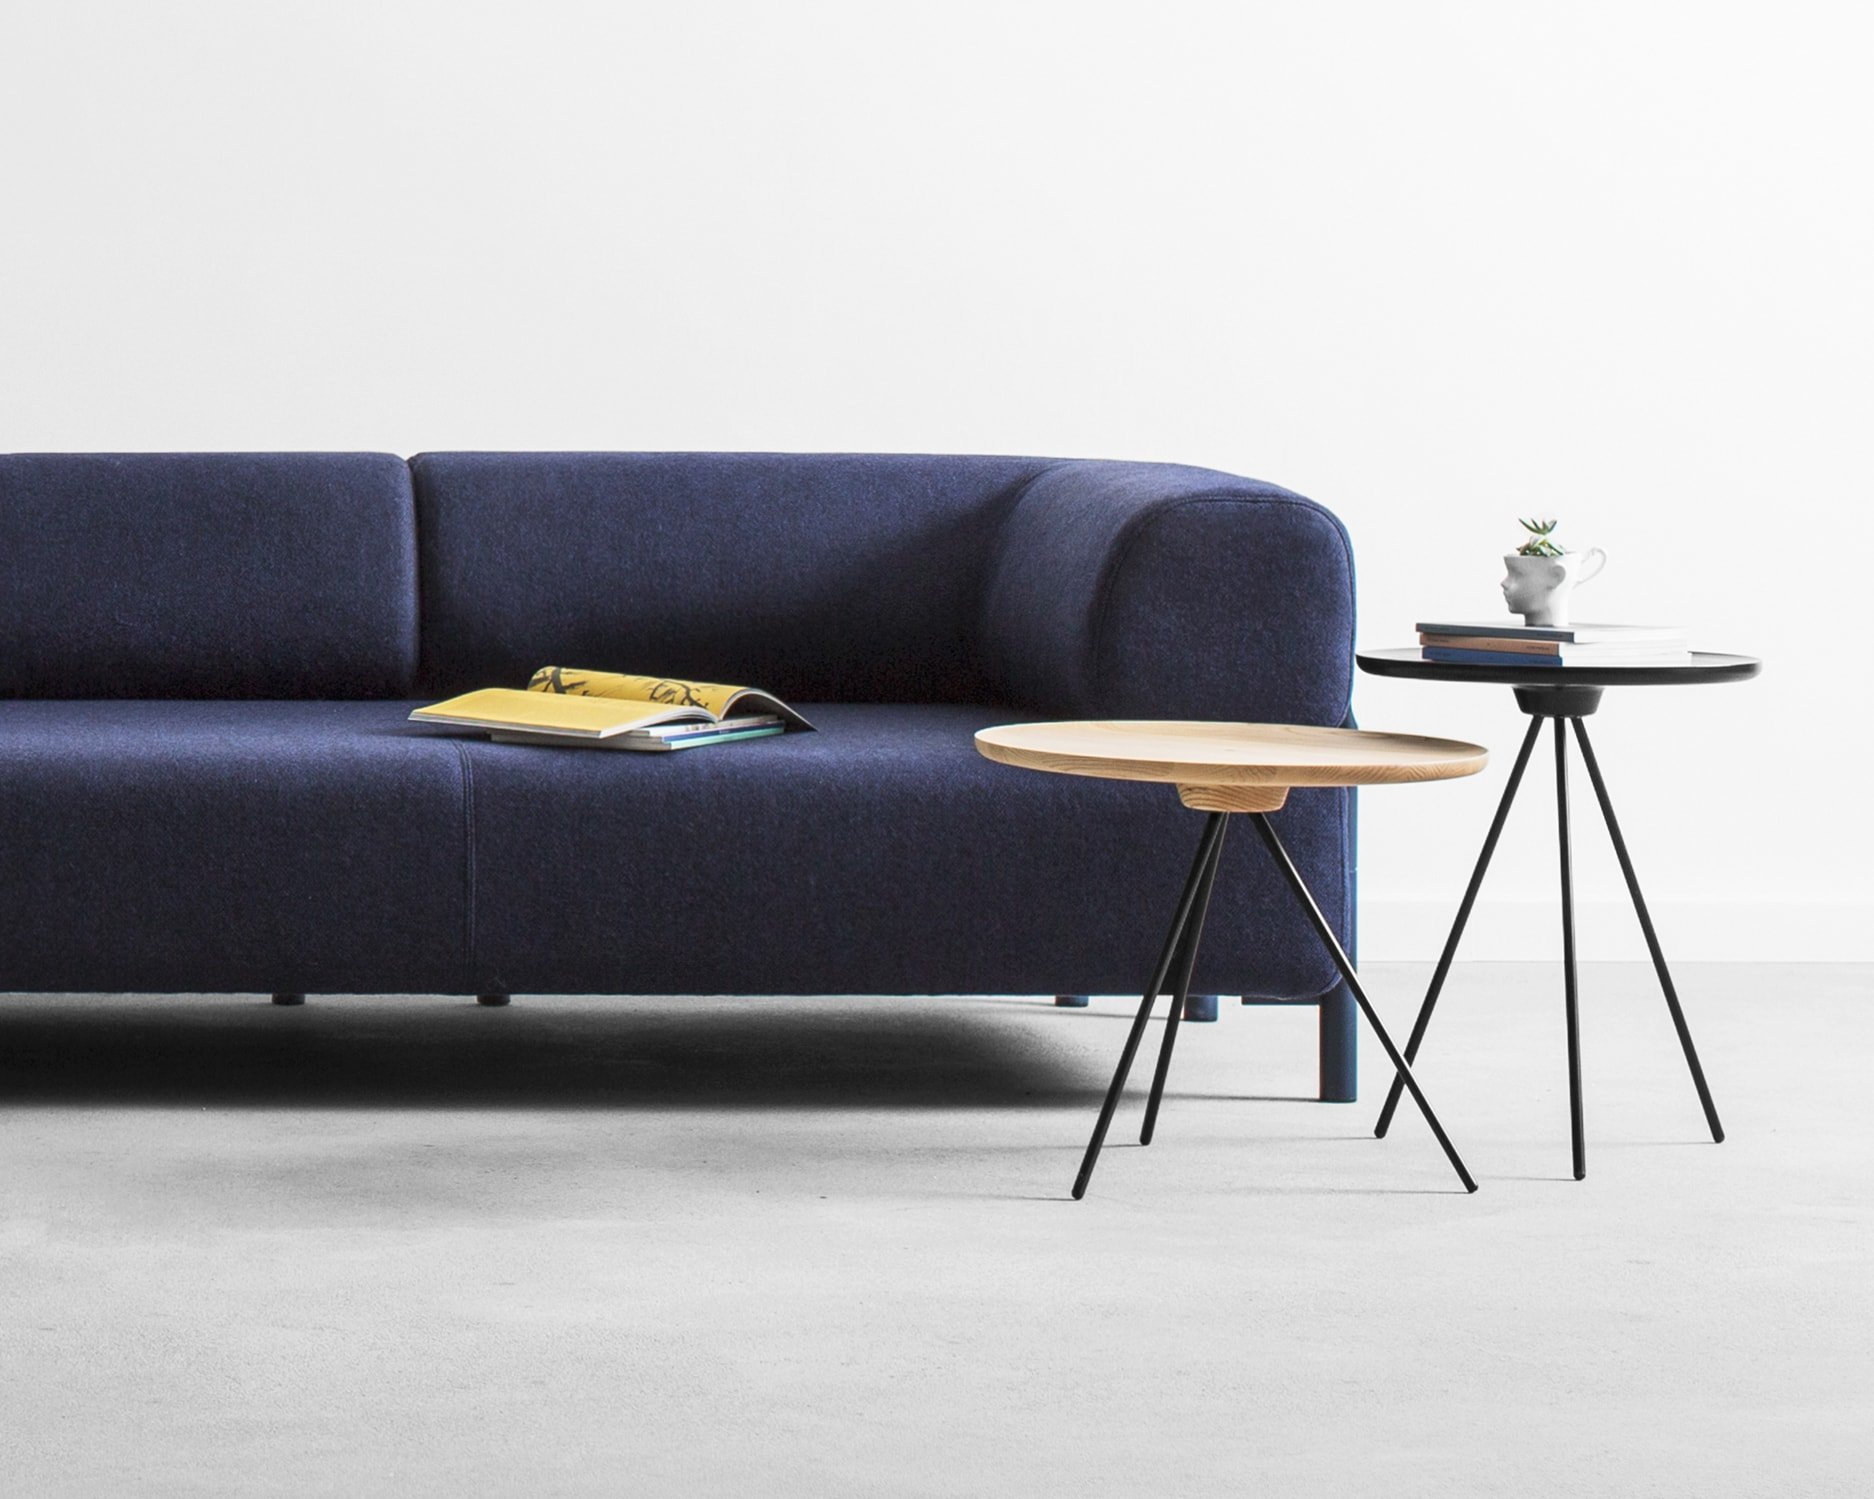 After Ikea: 10 mid-range furniture stores that won't break the bank